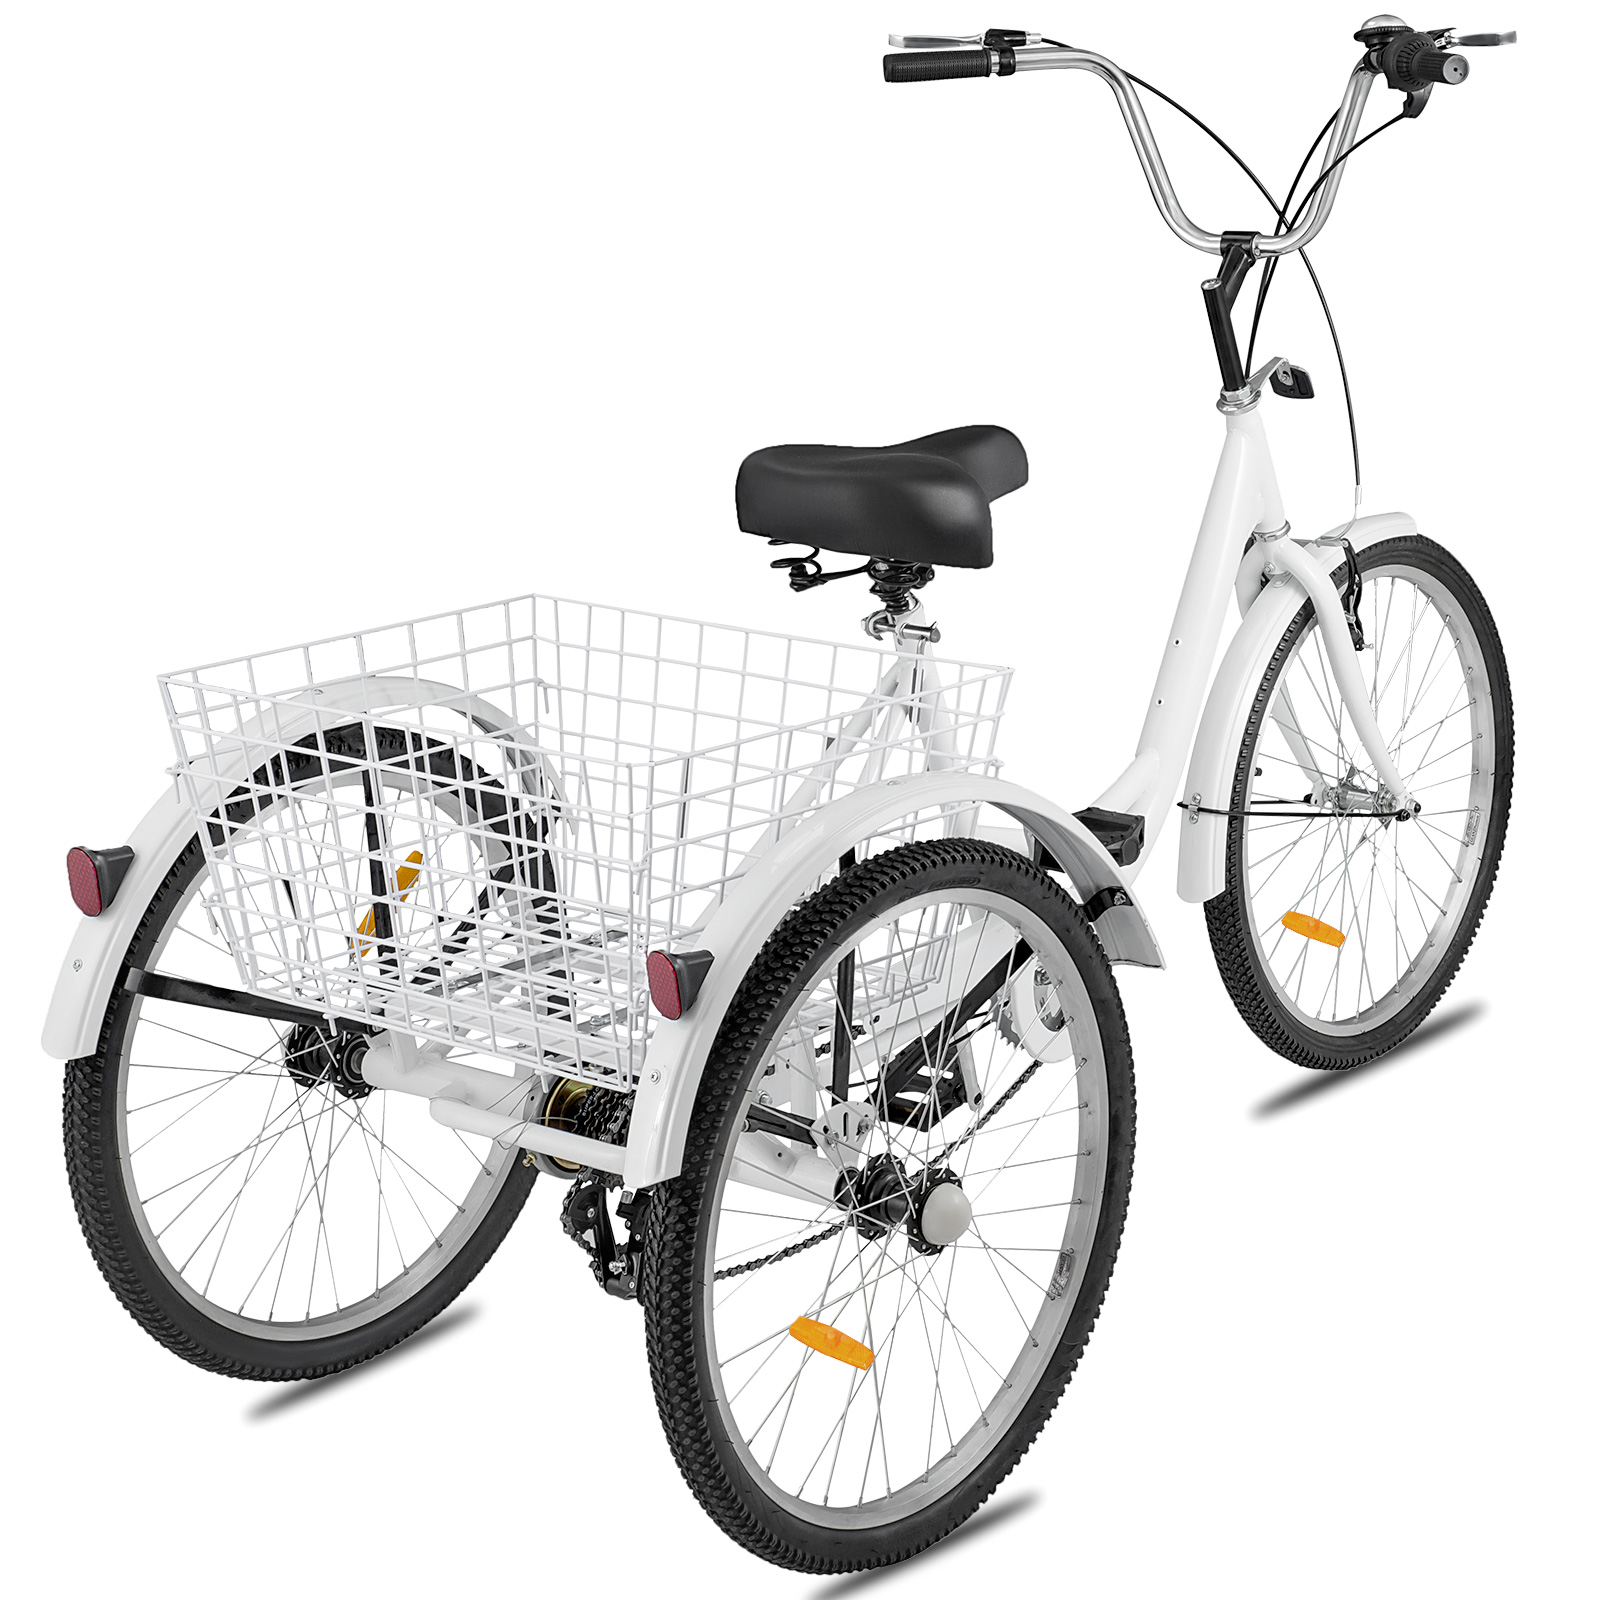 20-24-26-034-Adult-Tricycle-1-7-Speed-3-Wheel-Large-Basket-For-Shopping-Optional thumbnail 335